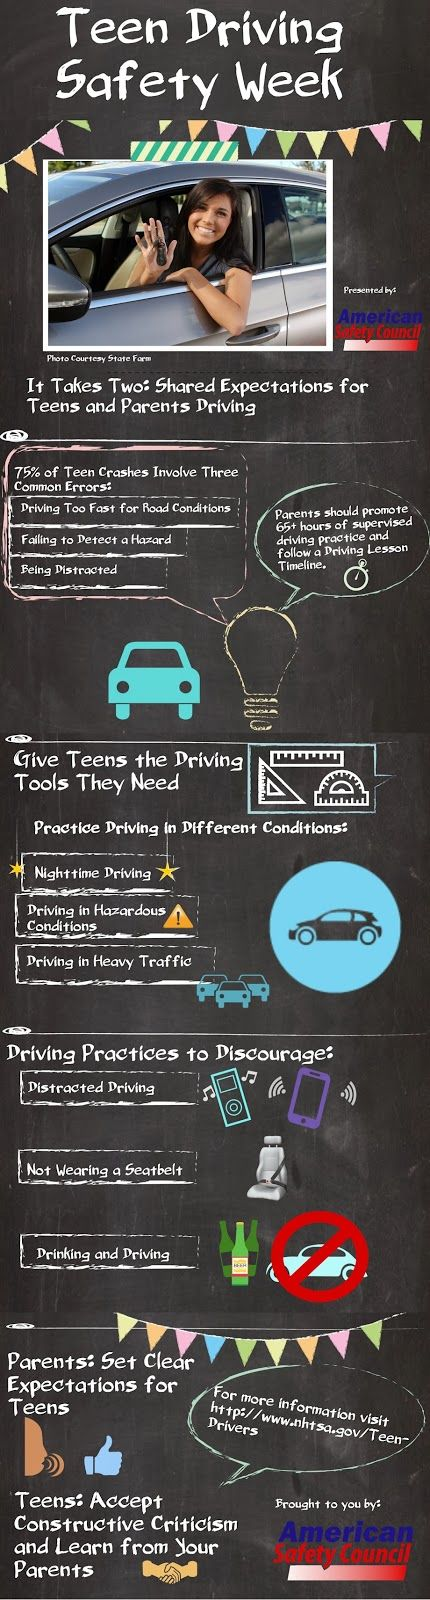 Teen Driving Safety Week important safety topics for teen drivers by American Safety Council!